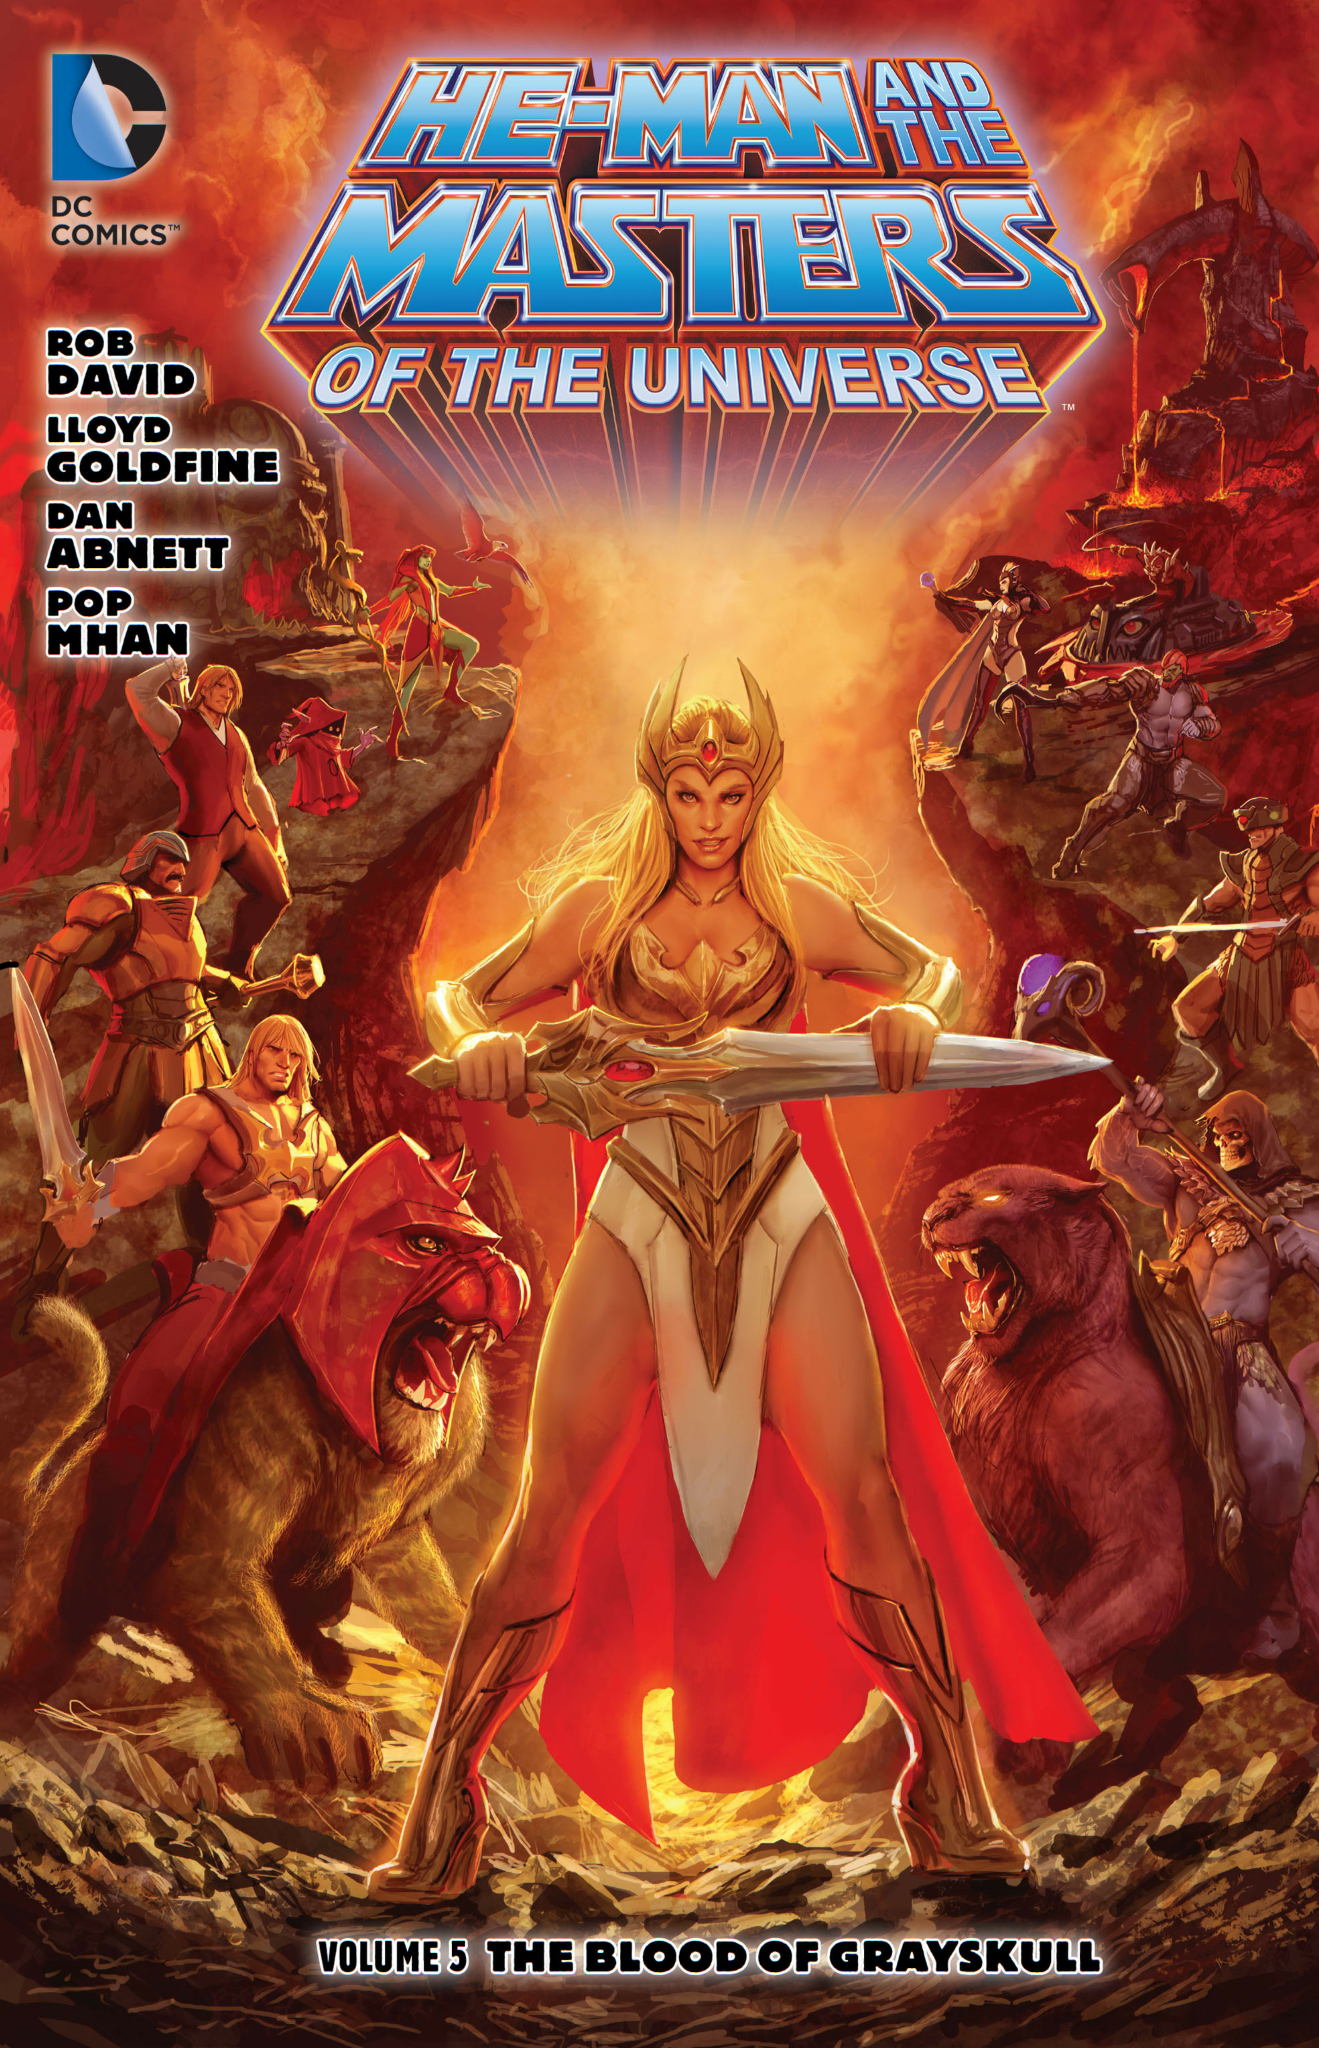 He-Man and the Masters of the Universe, Vol. 5: The Blood of Greyskull